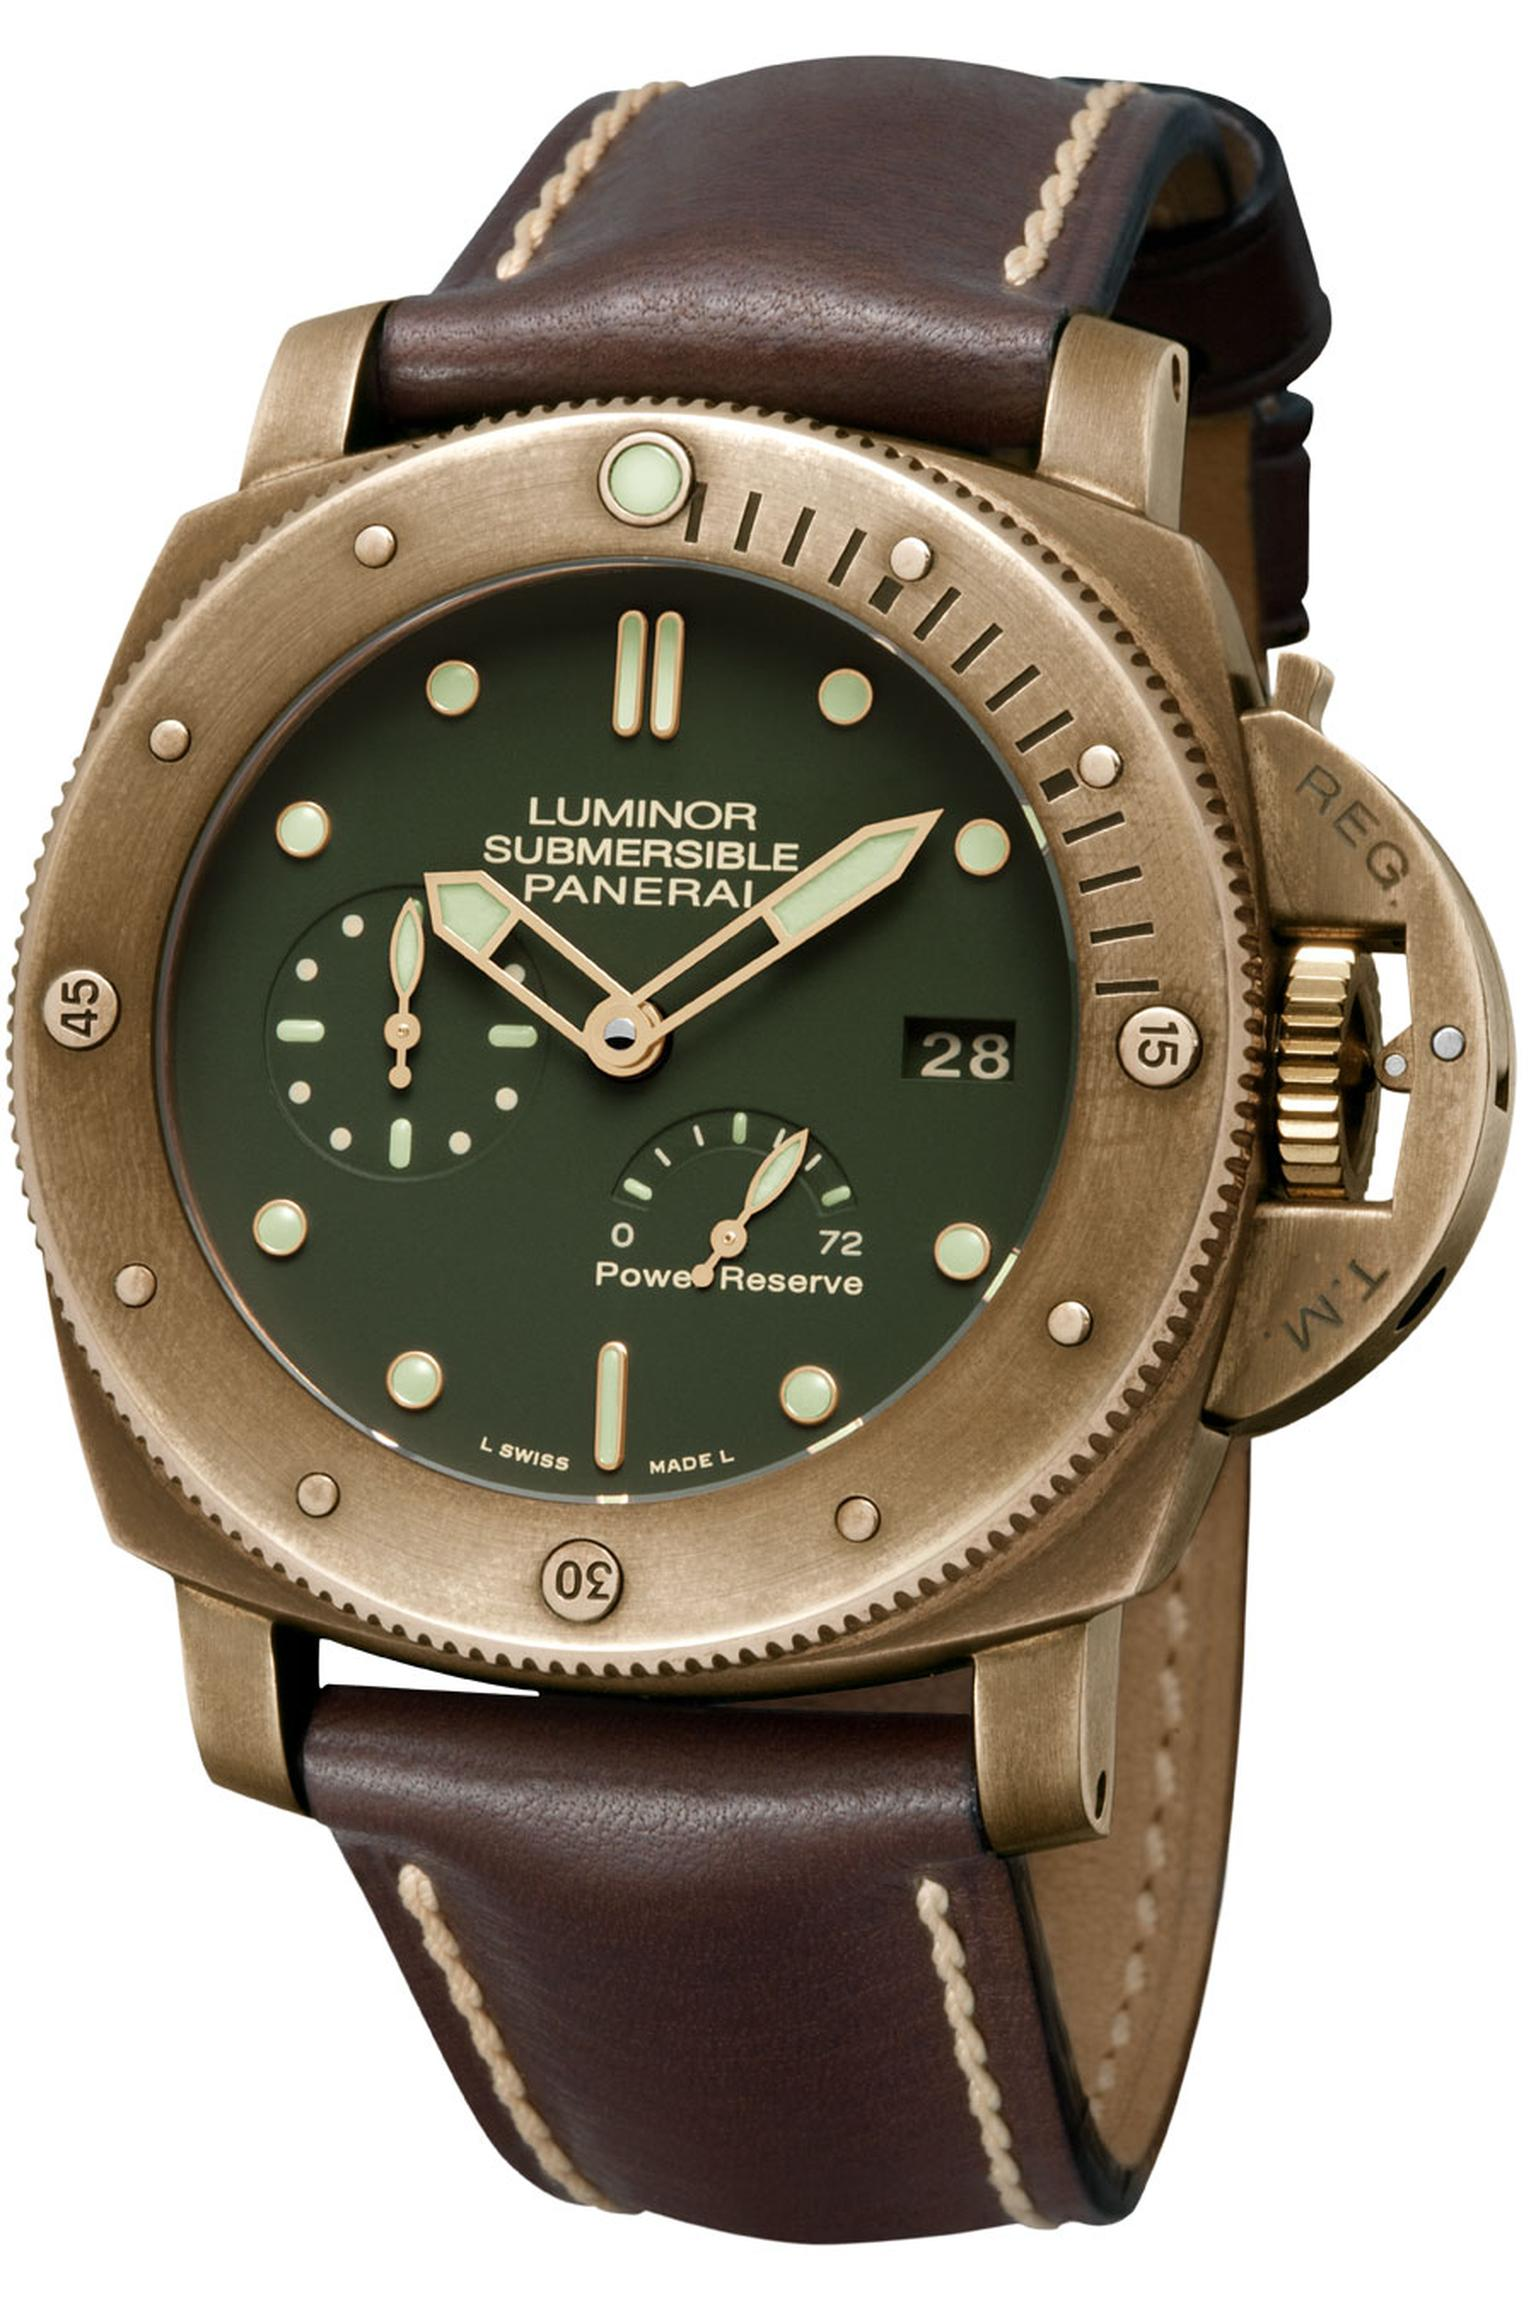 Office-Panerai-Submersible.jpg